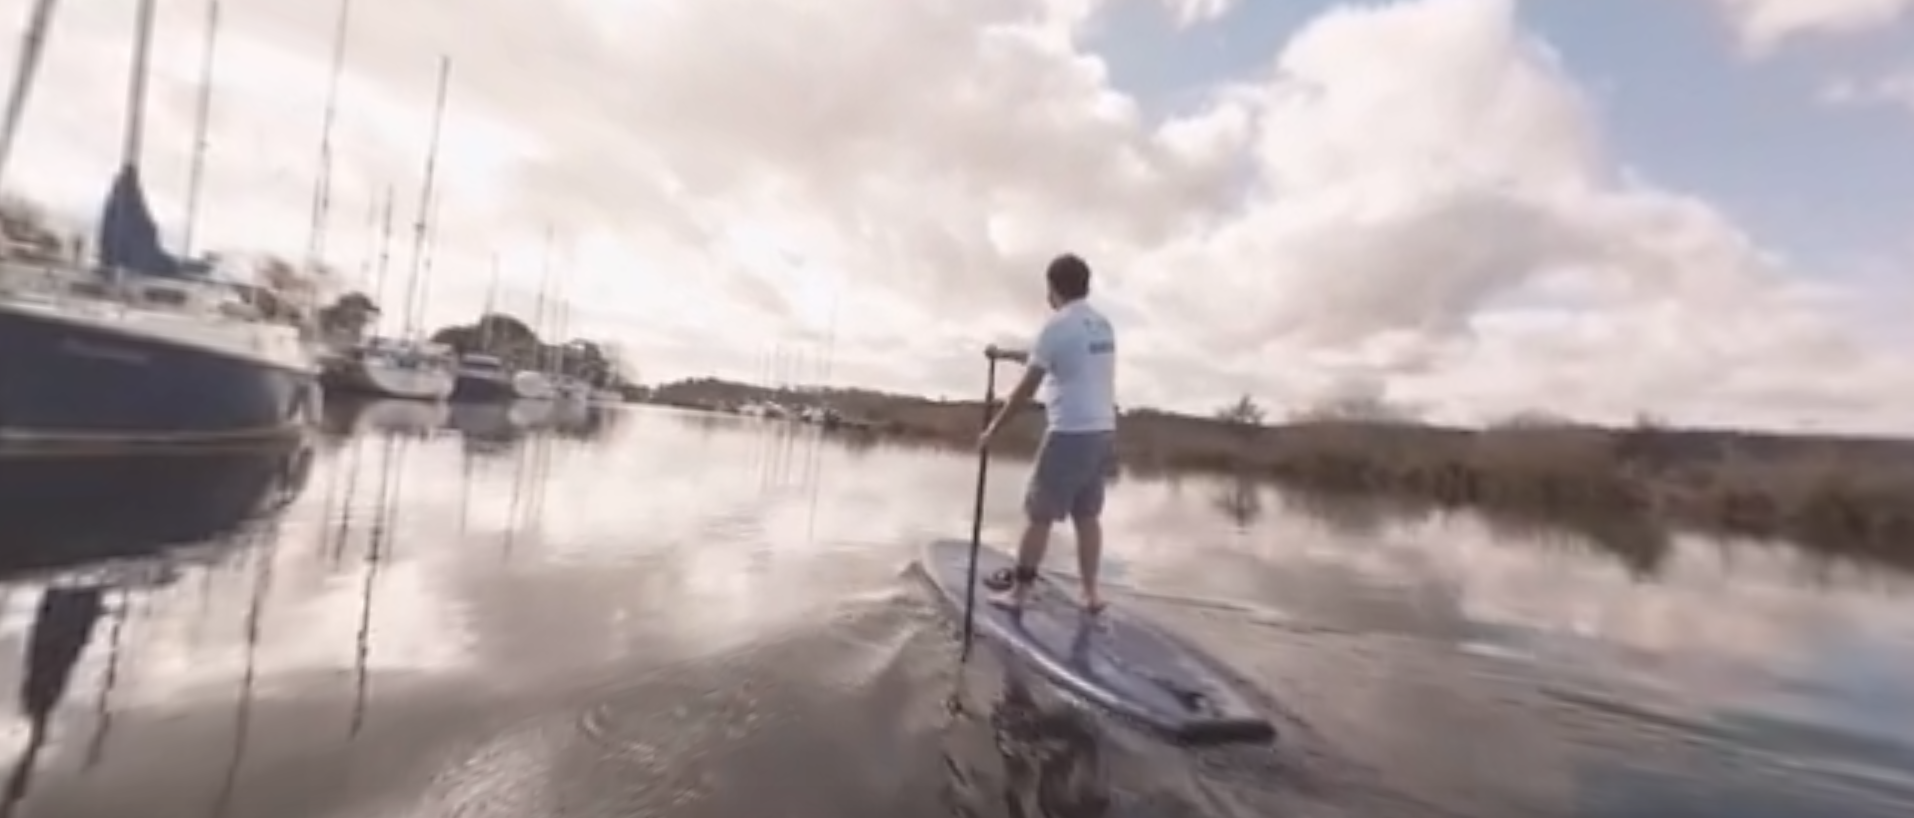 Experience stand-up paddle boarding in 360 VR